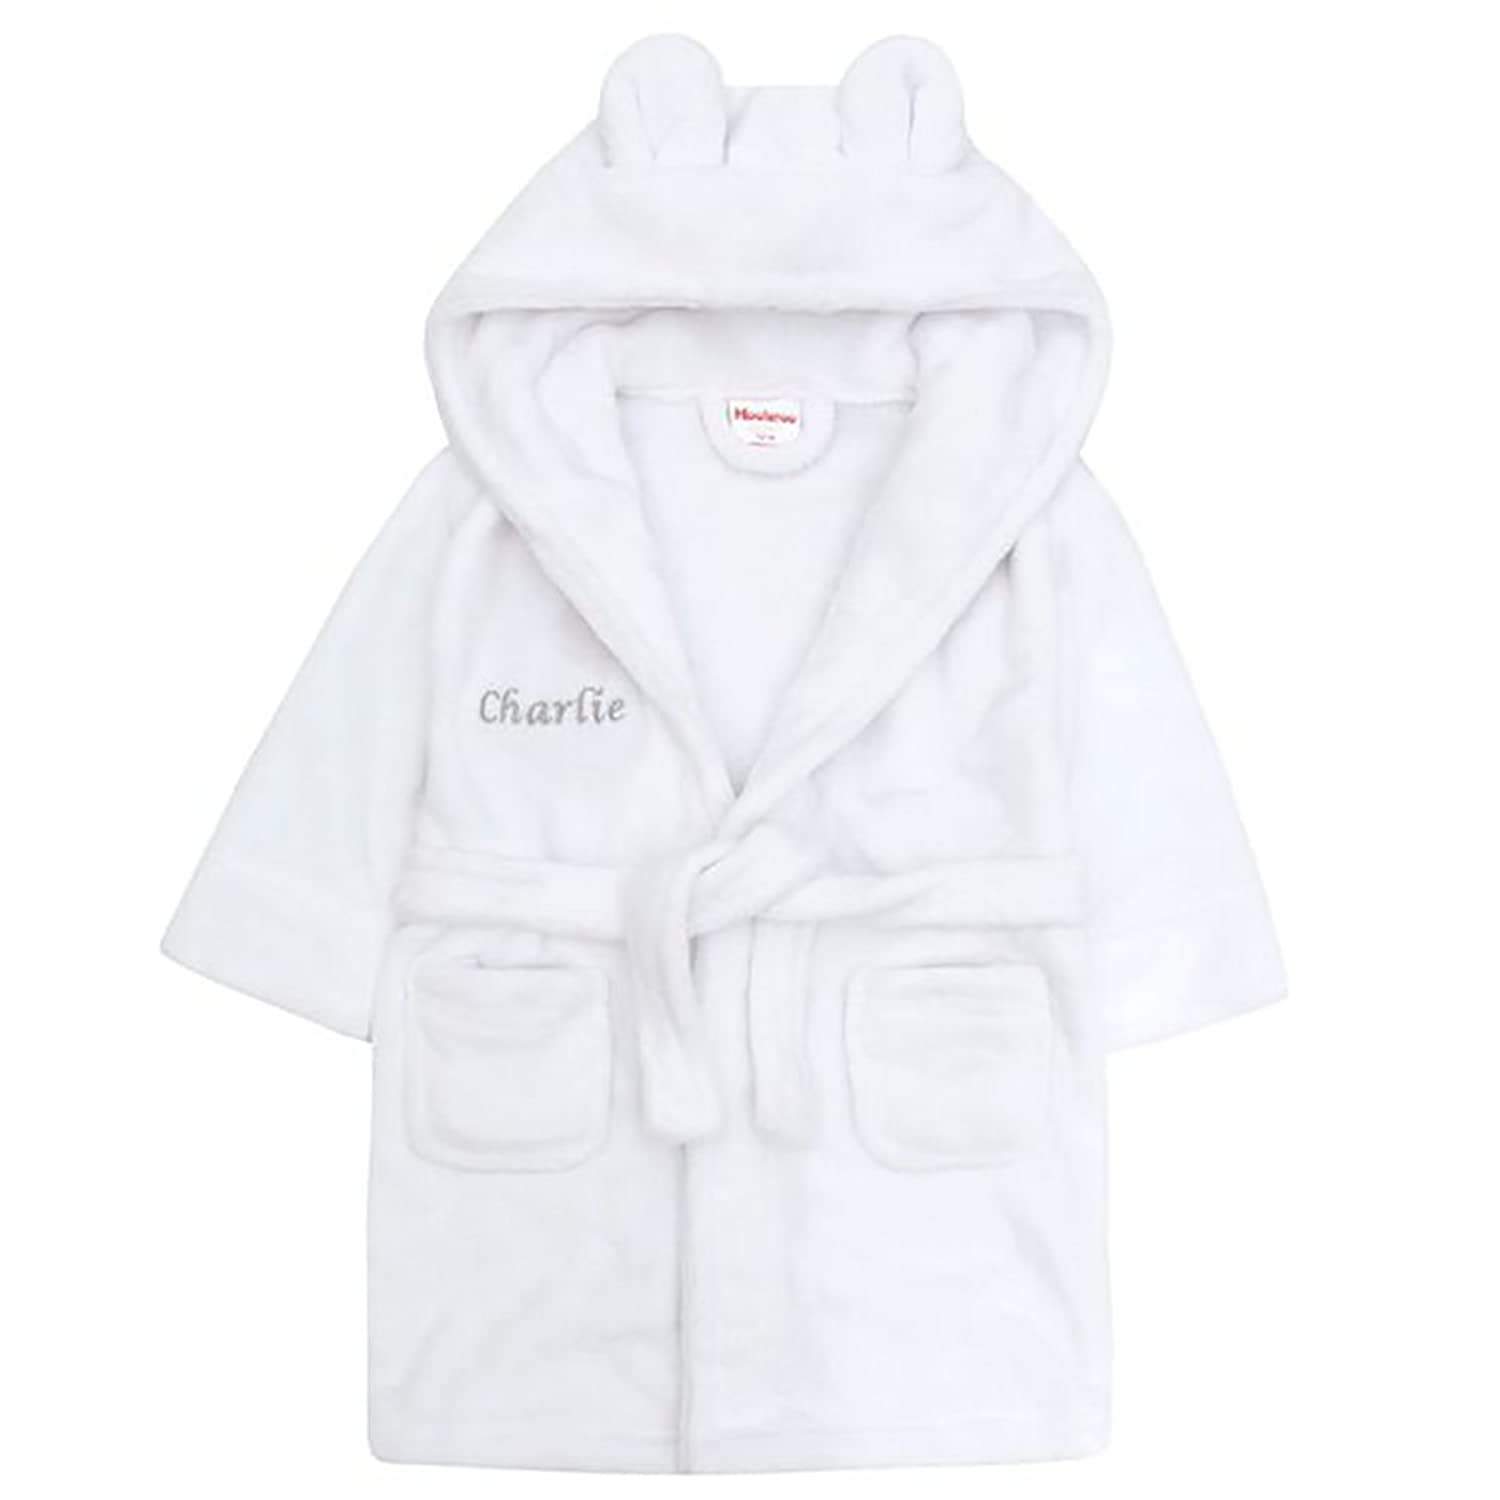 personalised baby bathrobe pink or blue age 6 months: Amazon.co.uk: Baby